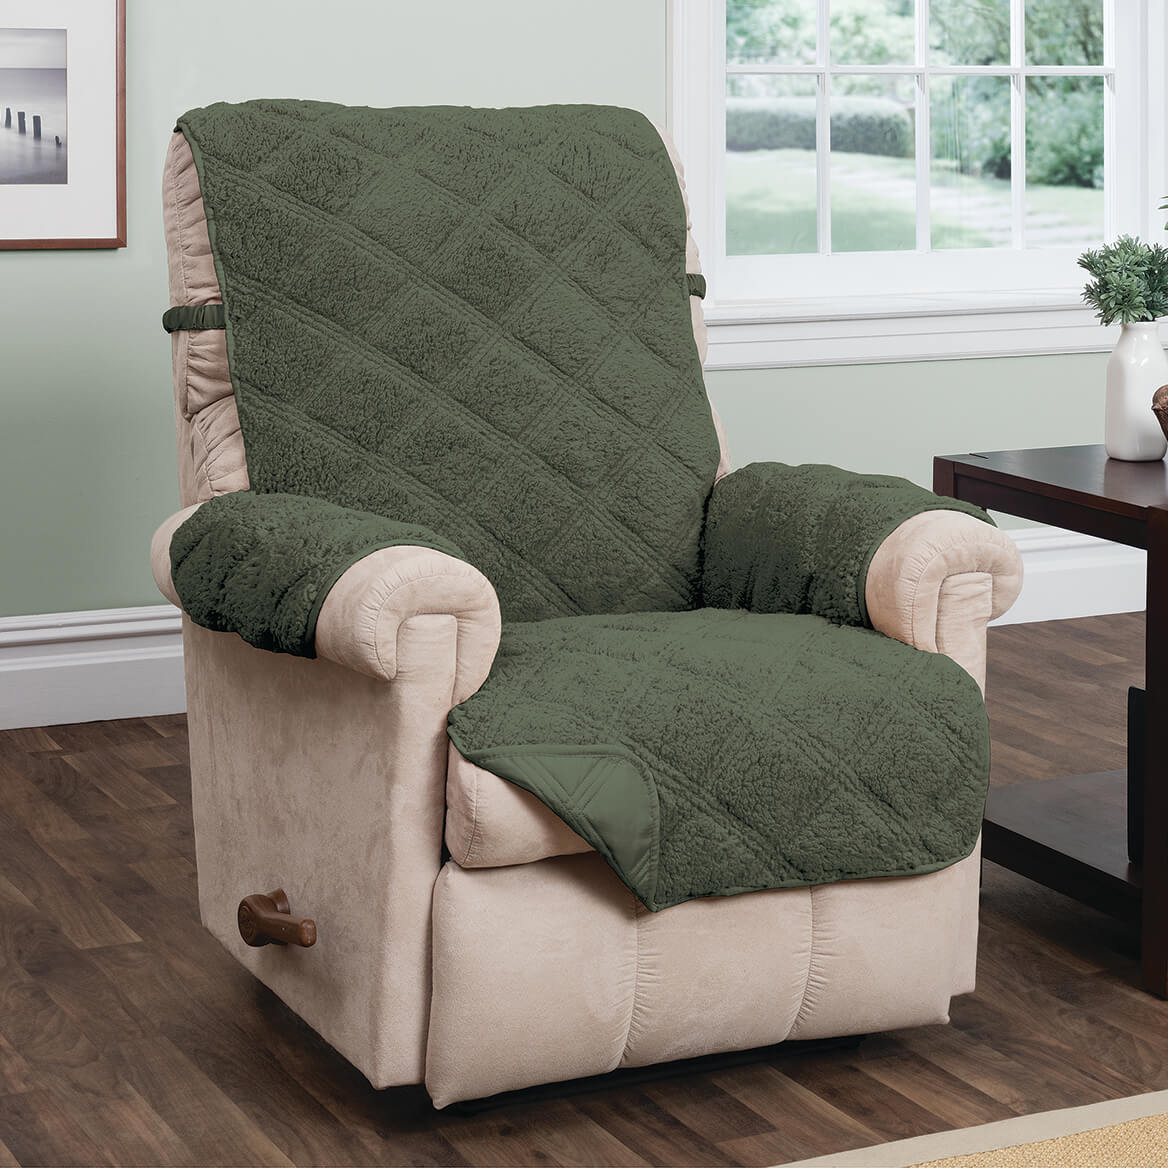 waterproof chair covers for recliners what are wwe chairs made out of furniture protectors pads walter drake hudson sherpa recliner protector 365402